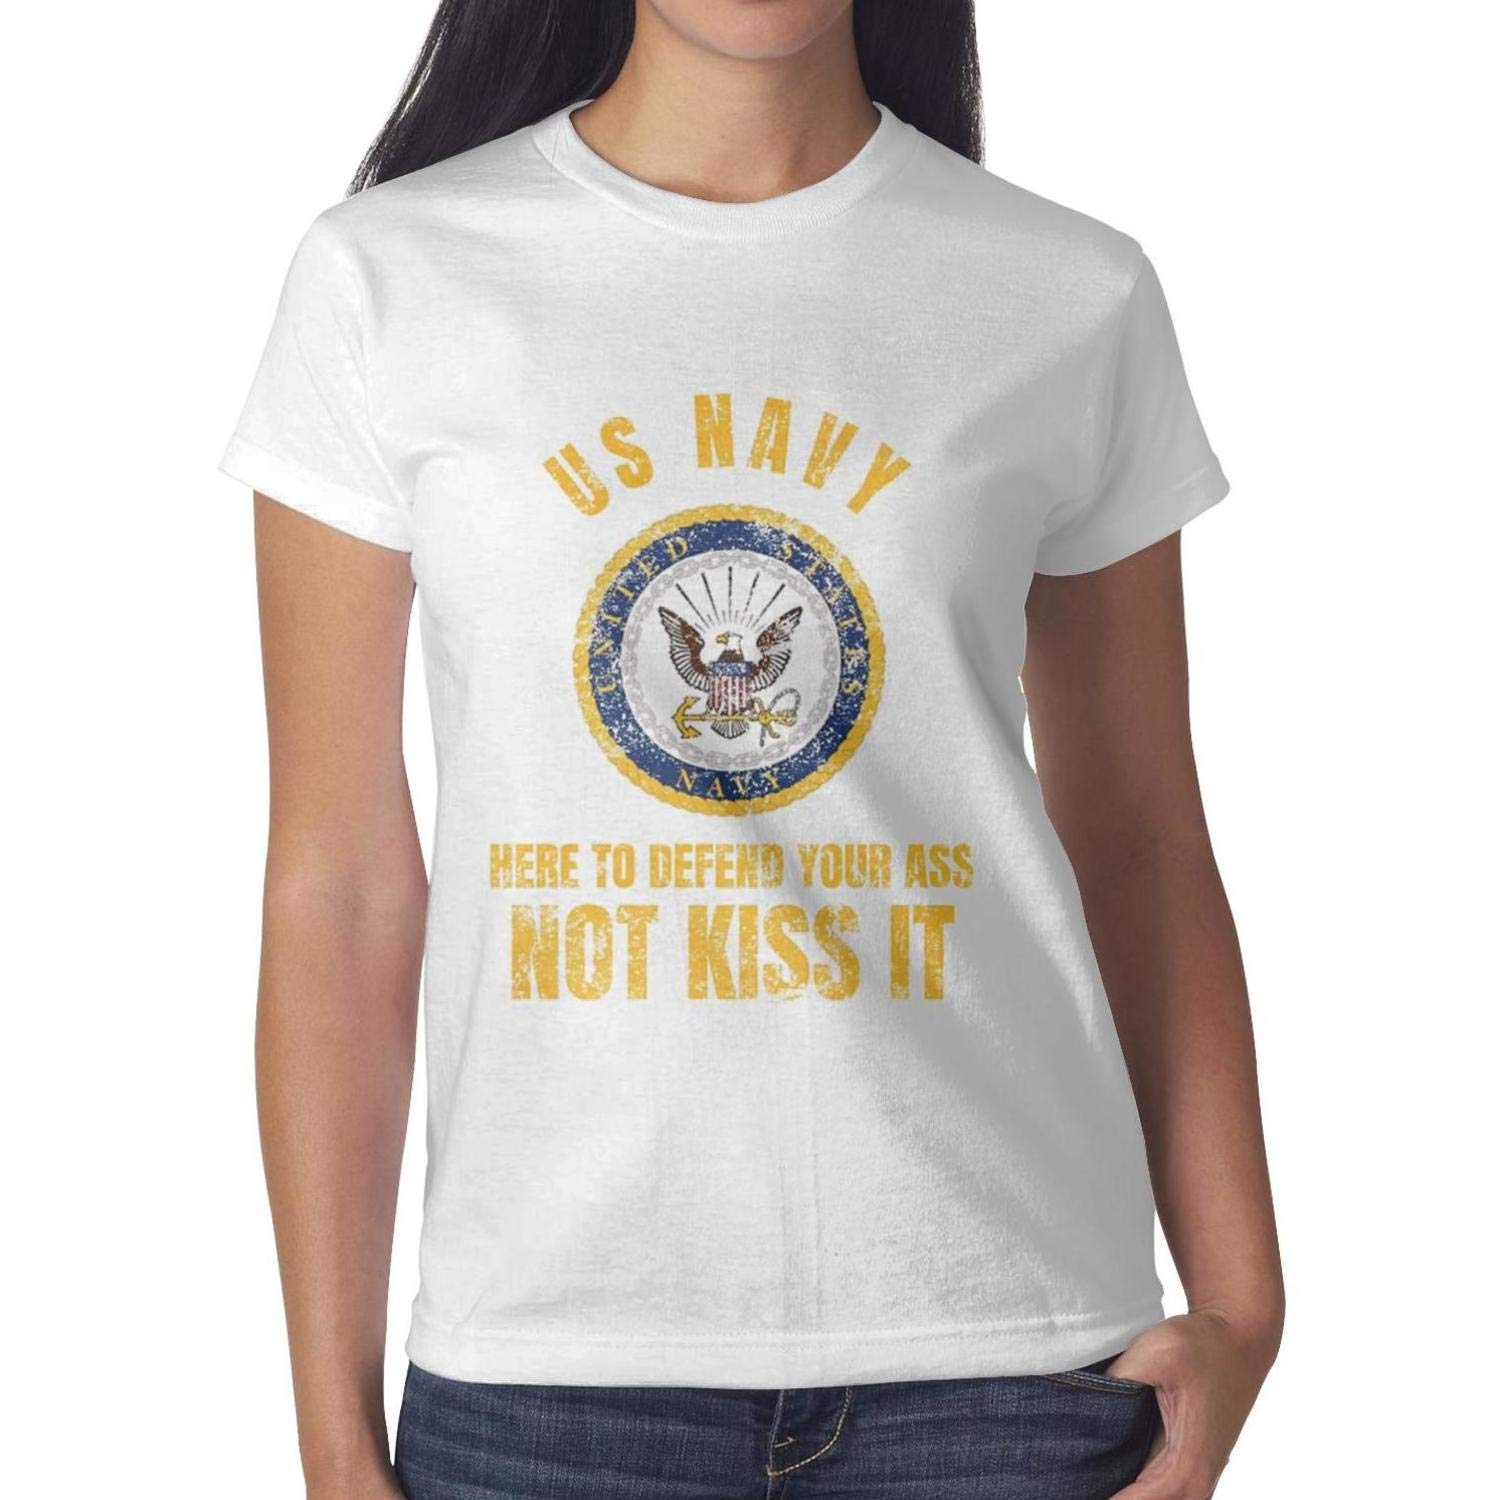 Tee Casual Cable Shirt Girls Tops Us Navy Not Kiss It Washed